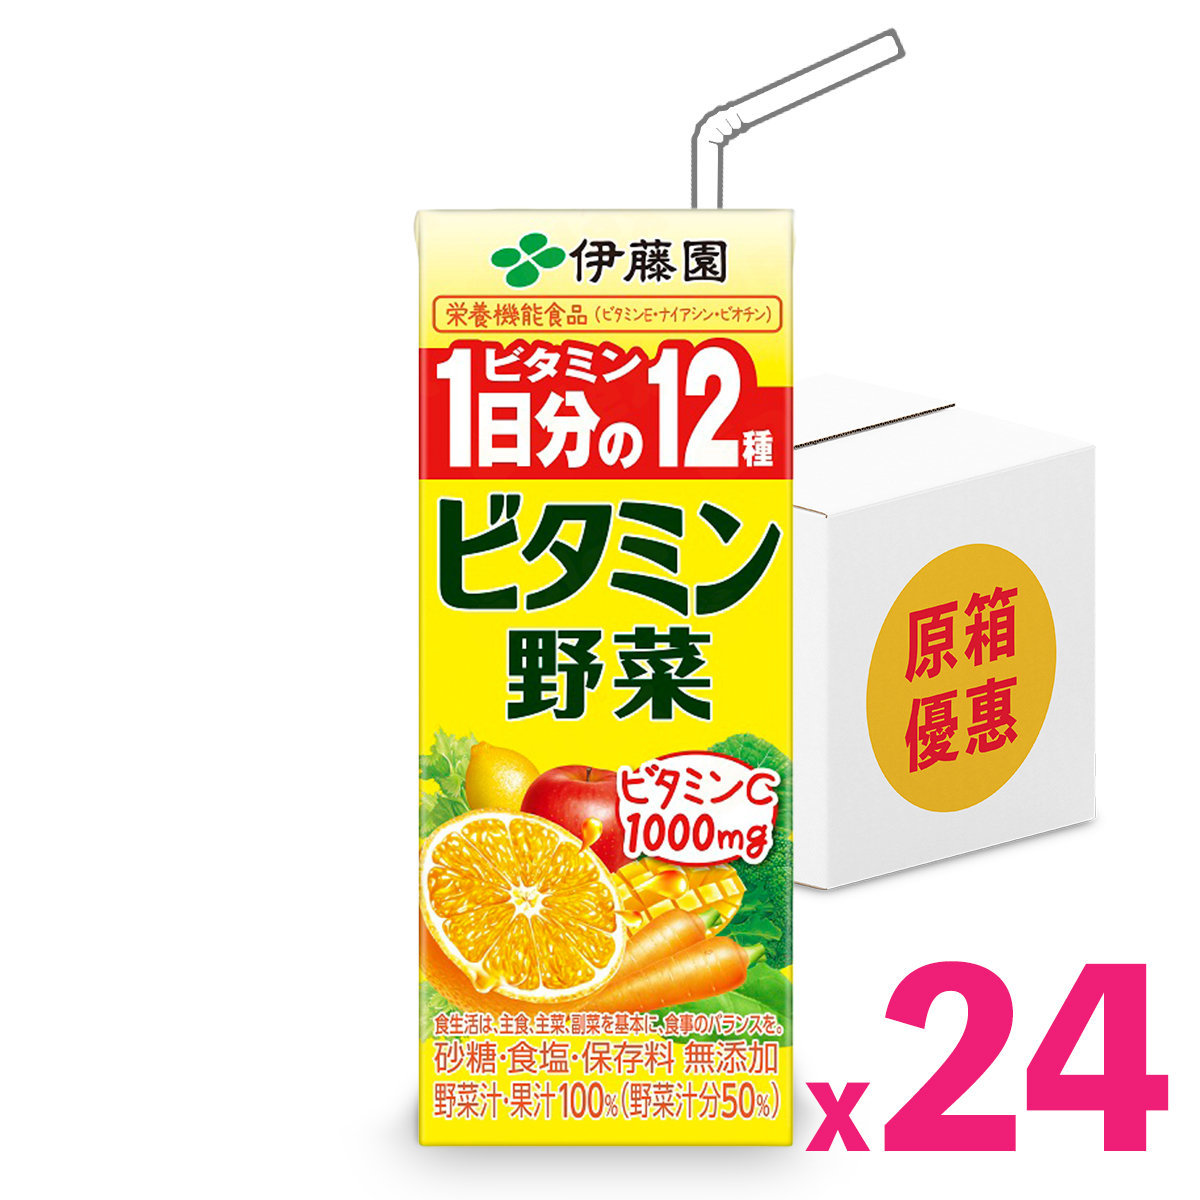 Daily Vegetables & Fruit Juice (200ml) (Yellow) x 24packs